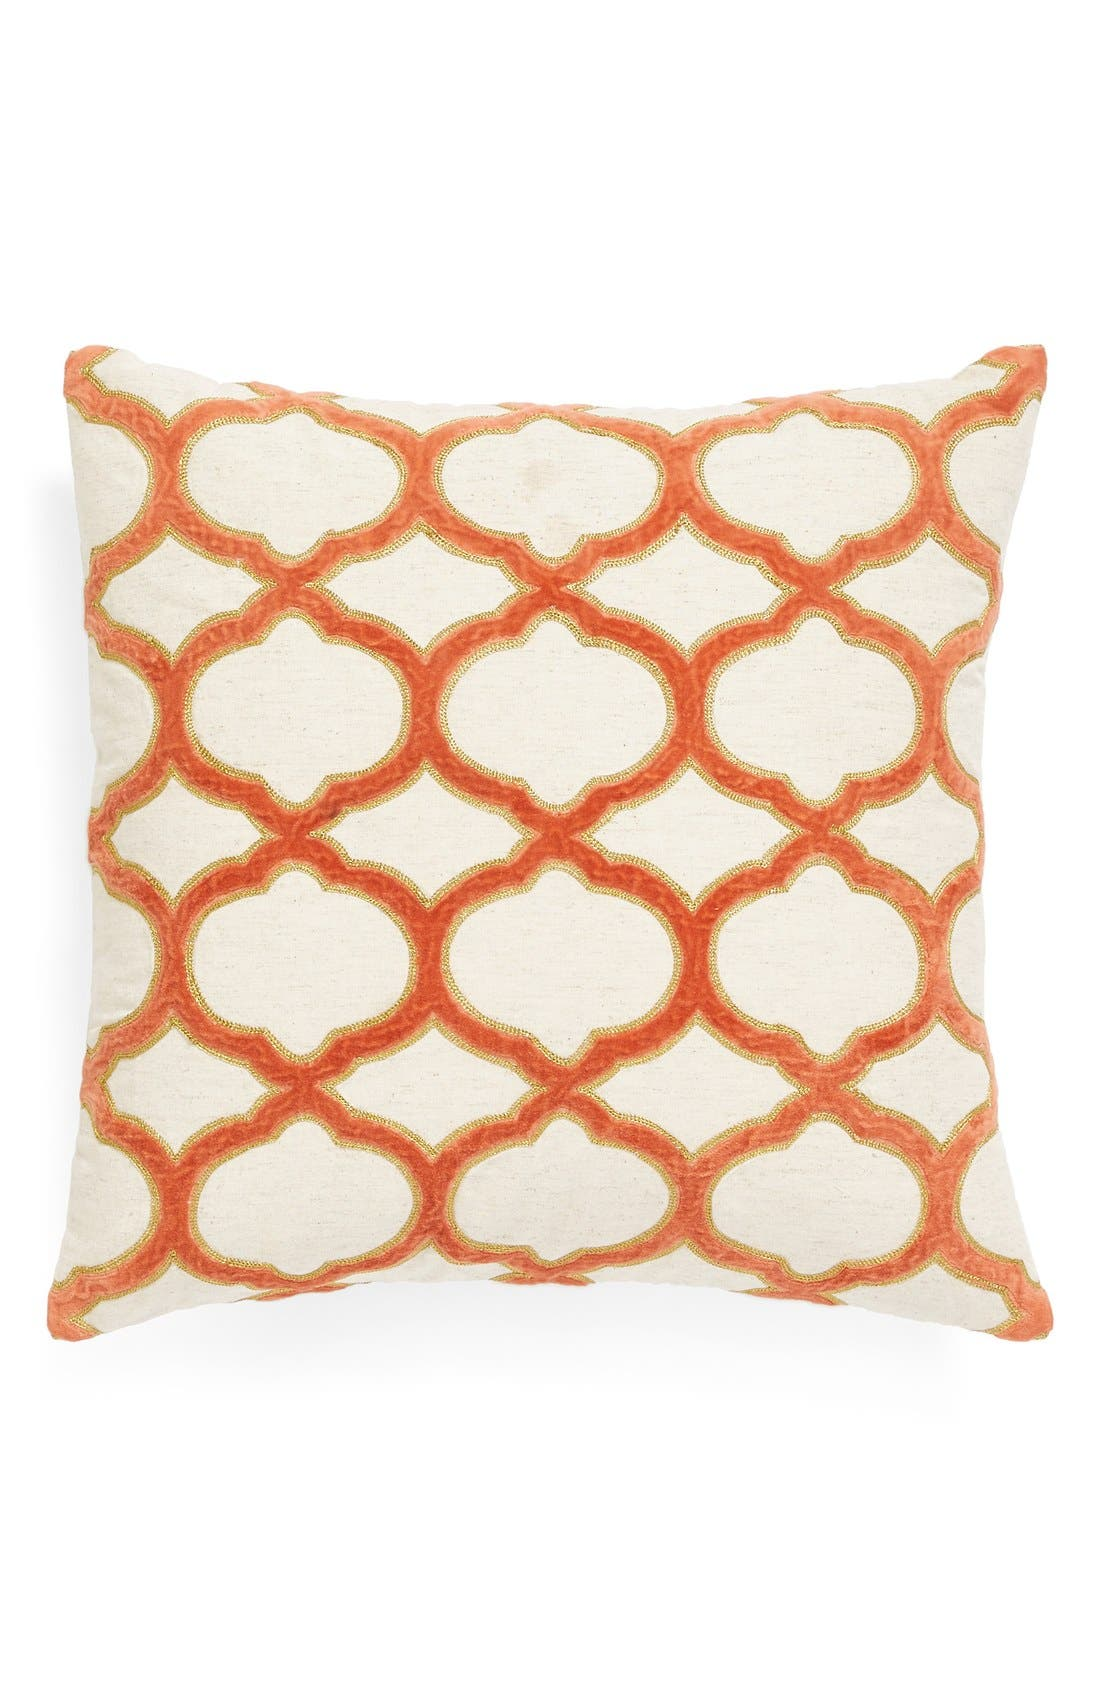 Main Image - Nordstrom at Home 'Velvet Trellis' Pillow